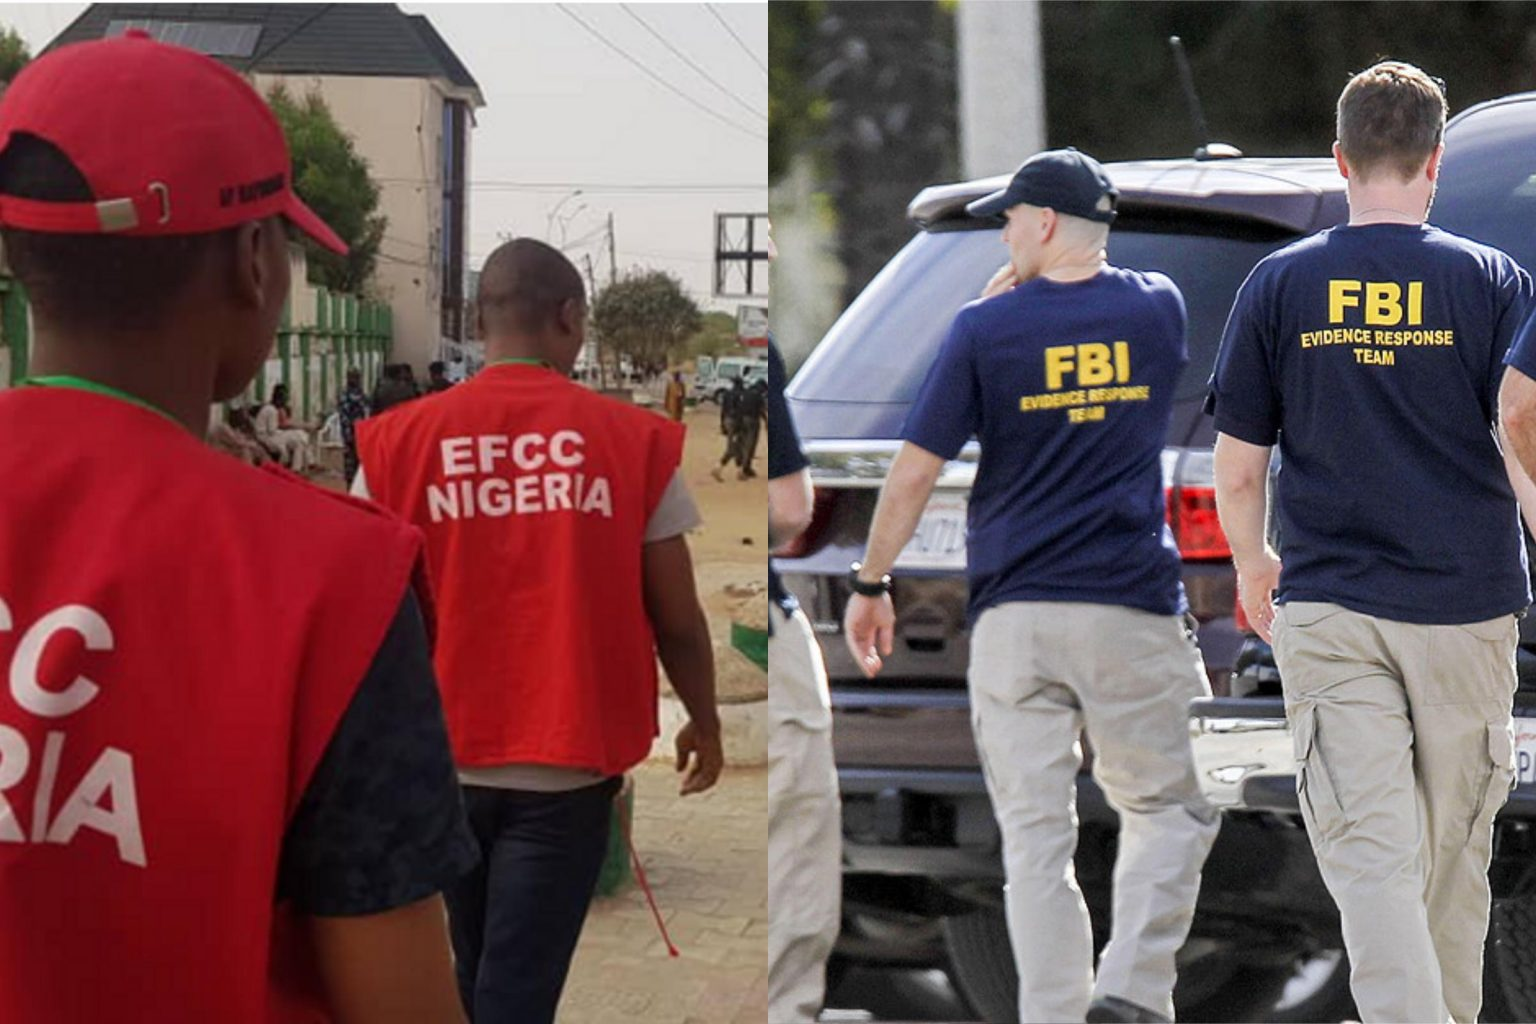 Nigeria-US joint crackdown on cyber fraud pins hundreds of suspects